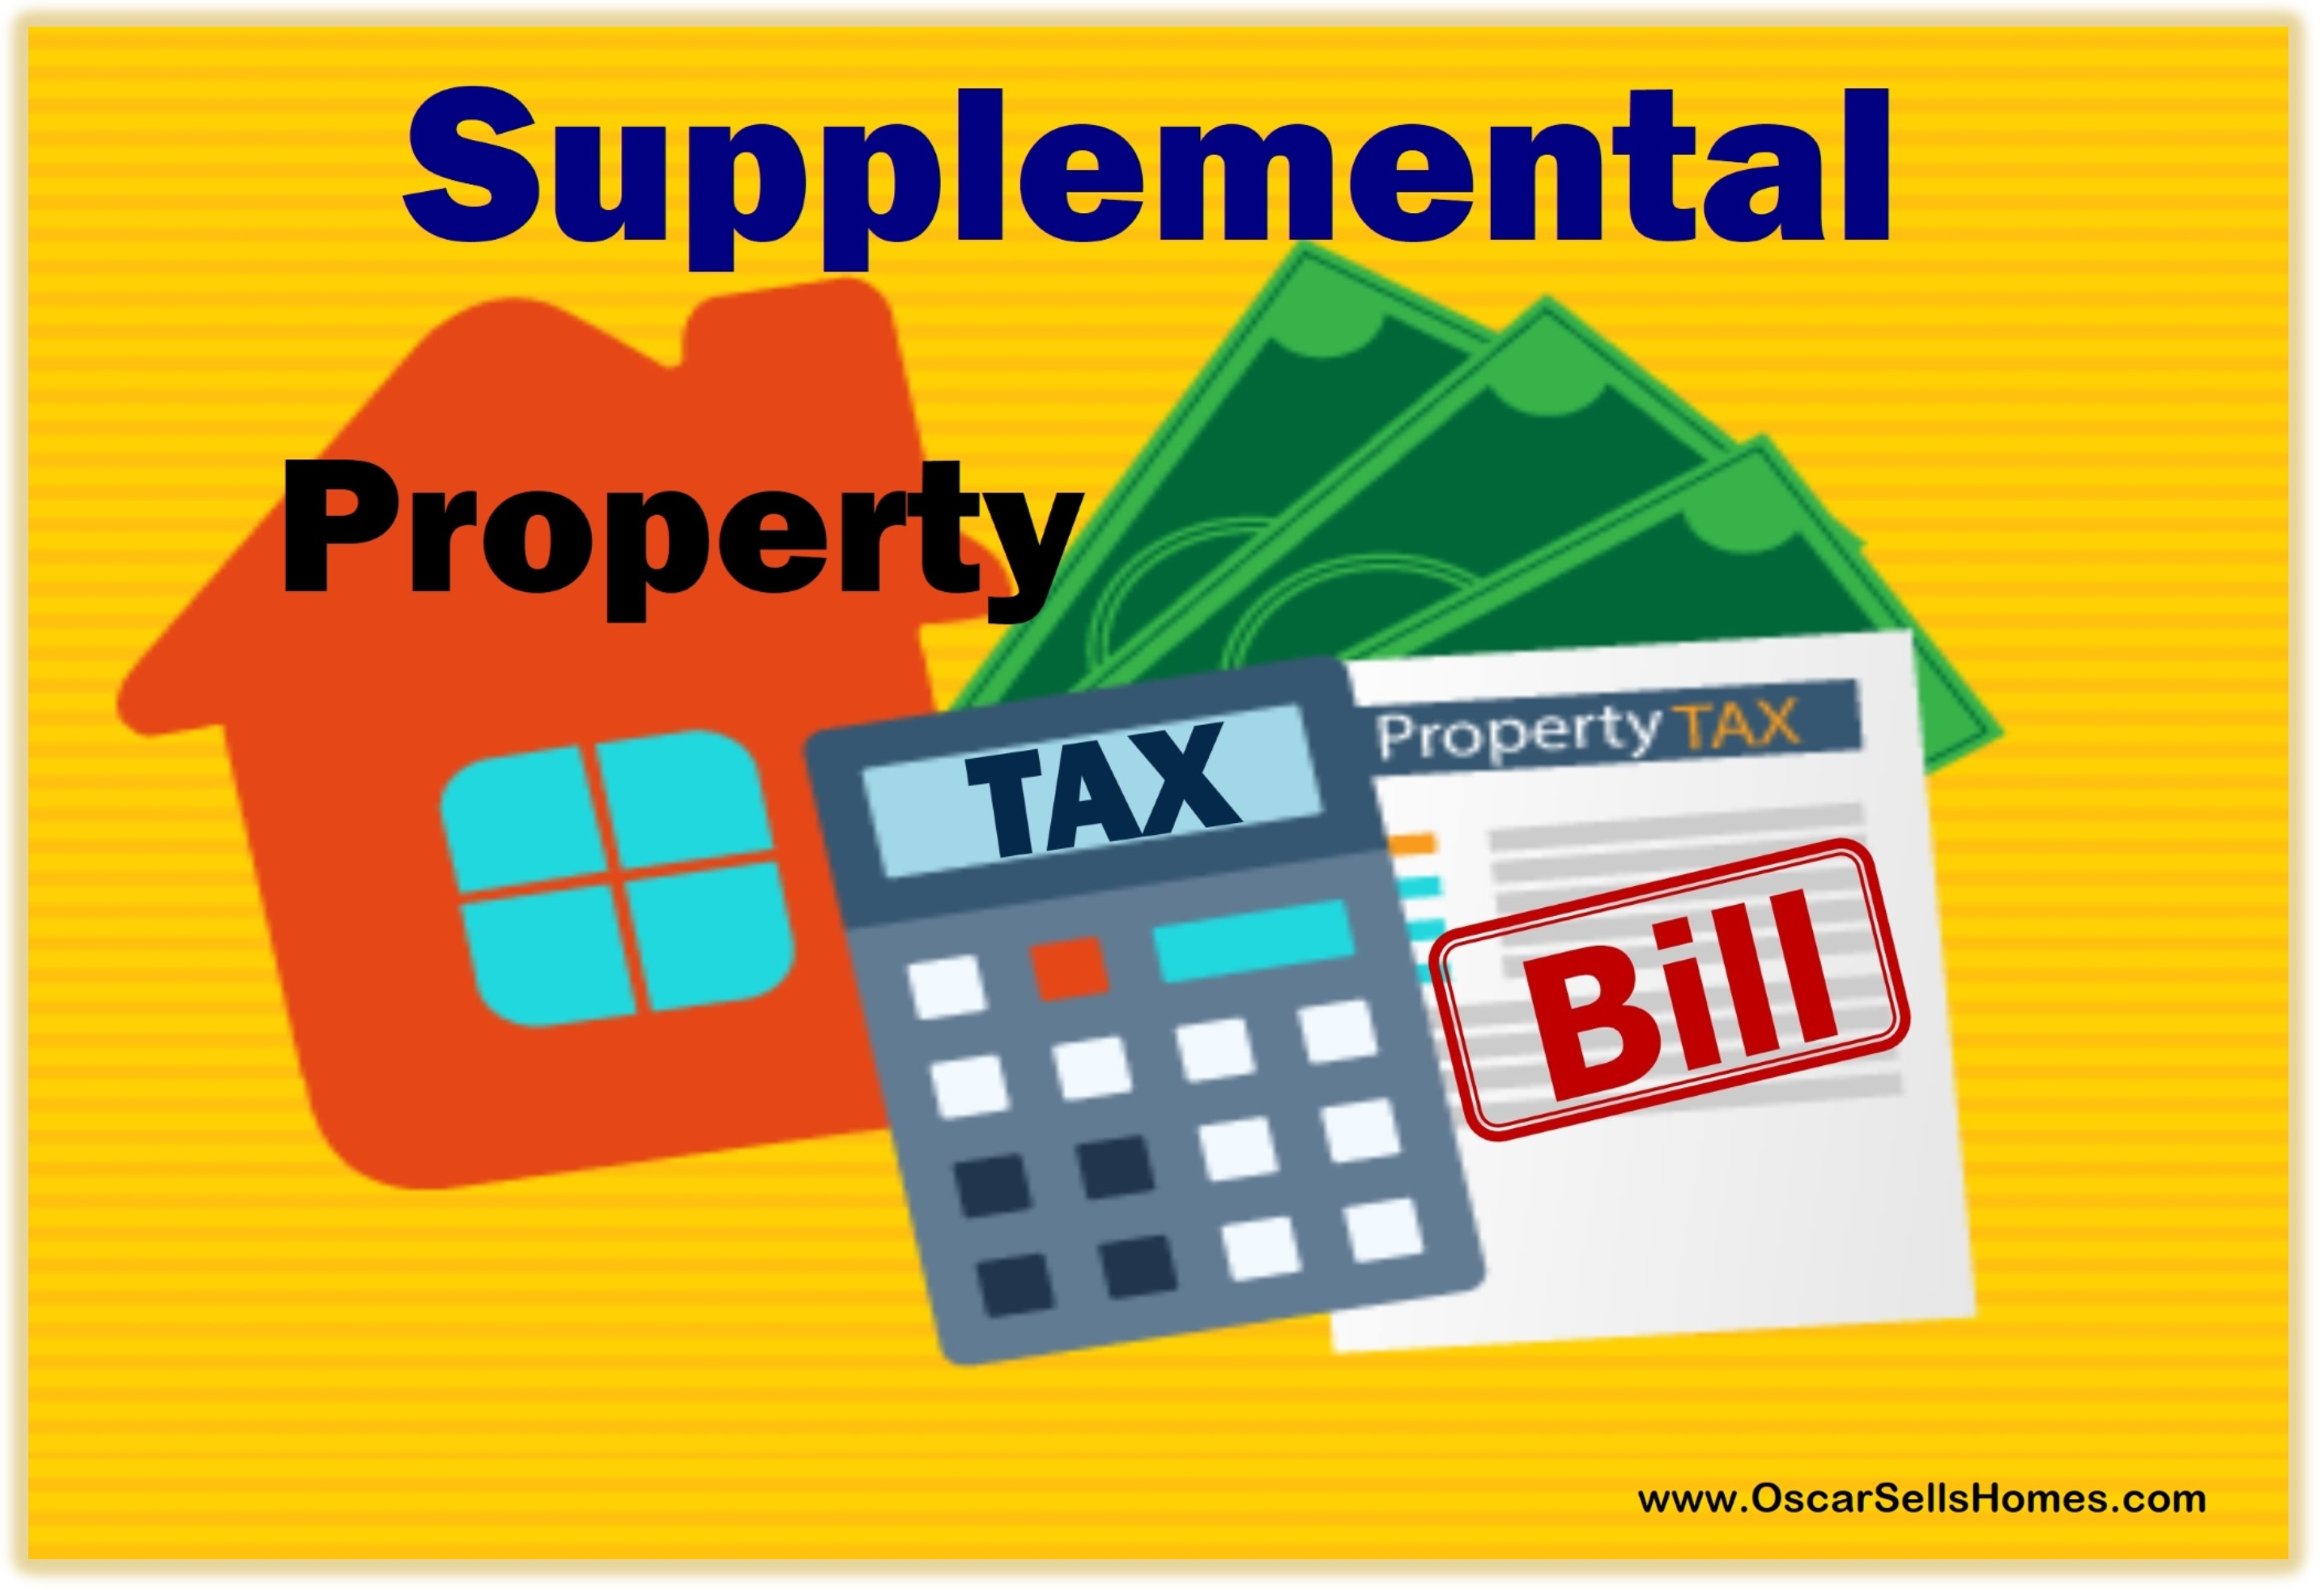 Supplemental Property Tax Bill